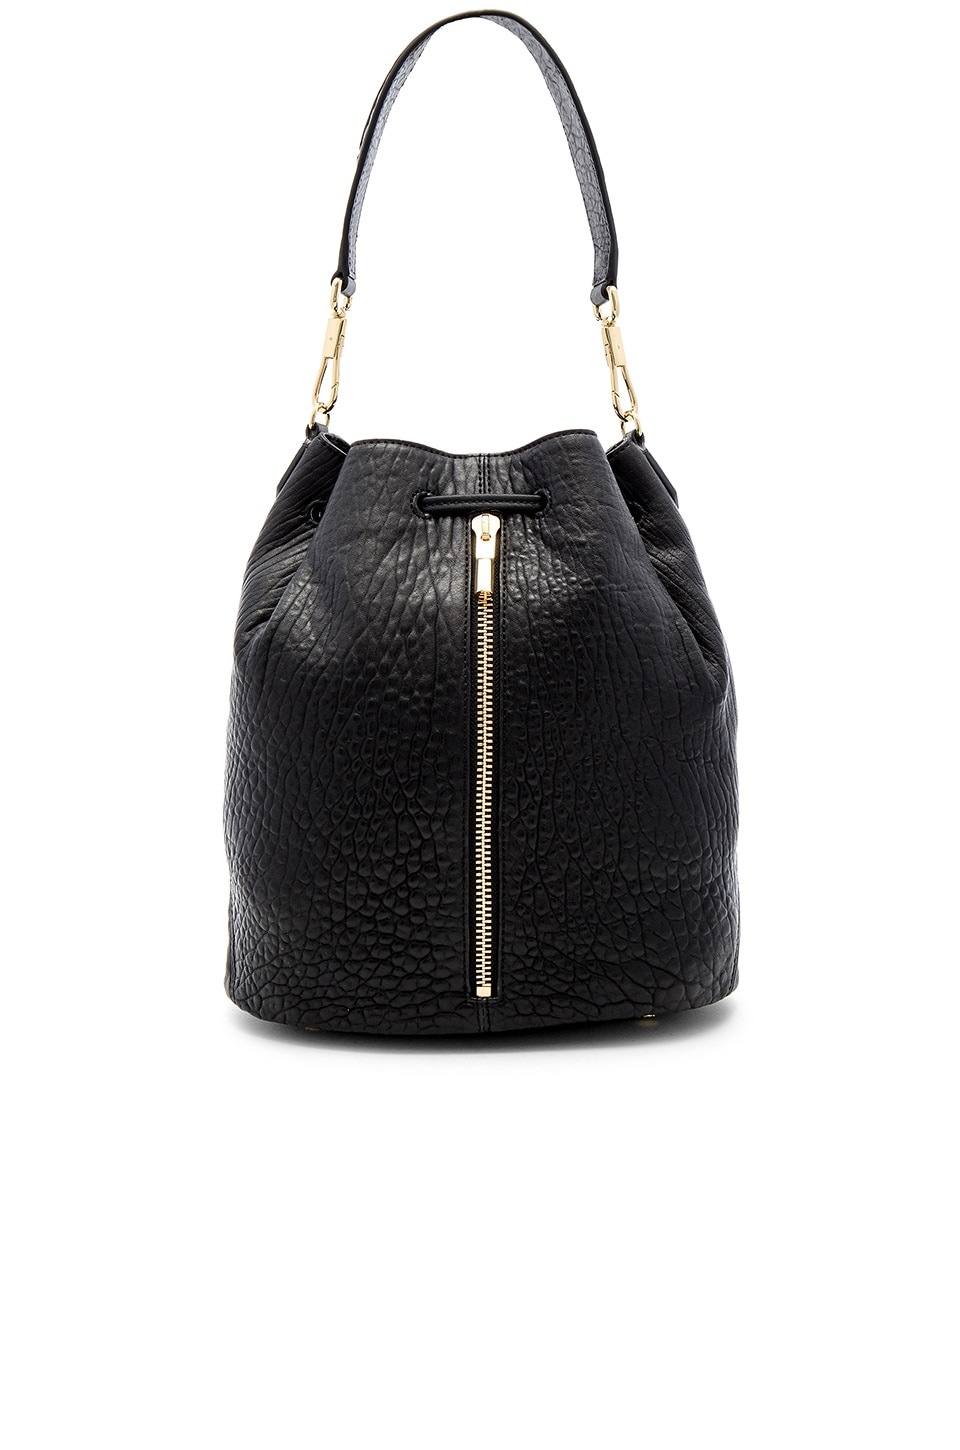 Elizabeth and James Cynnie Sling Bag in Black